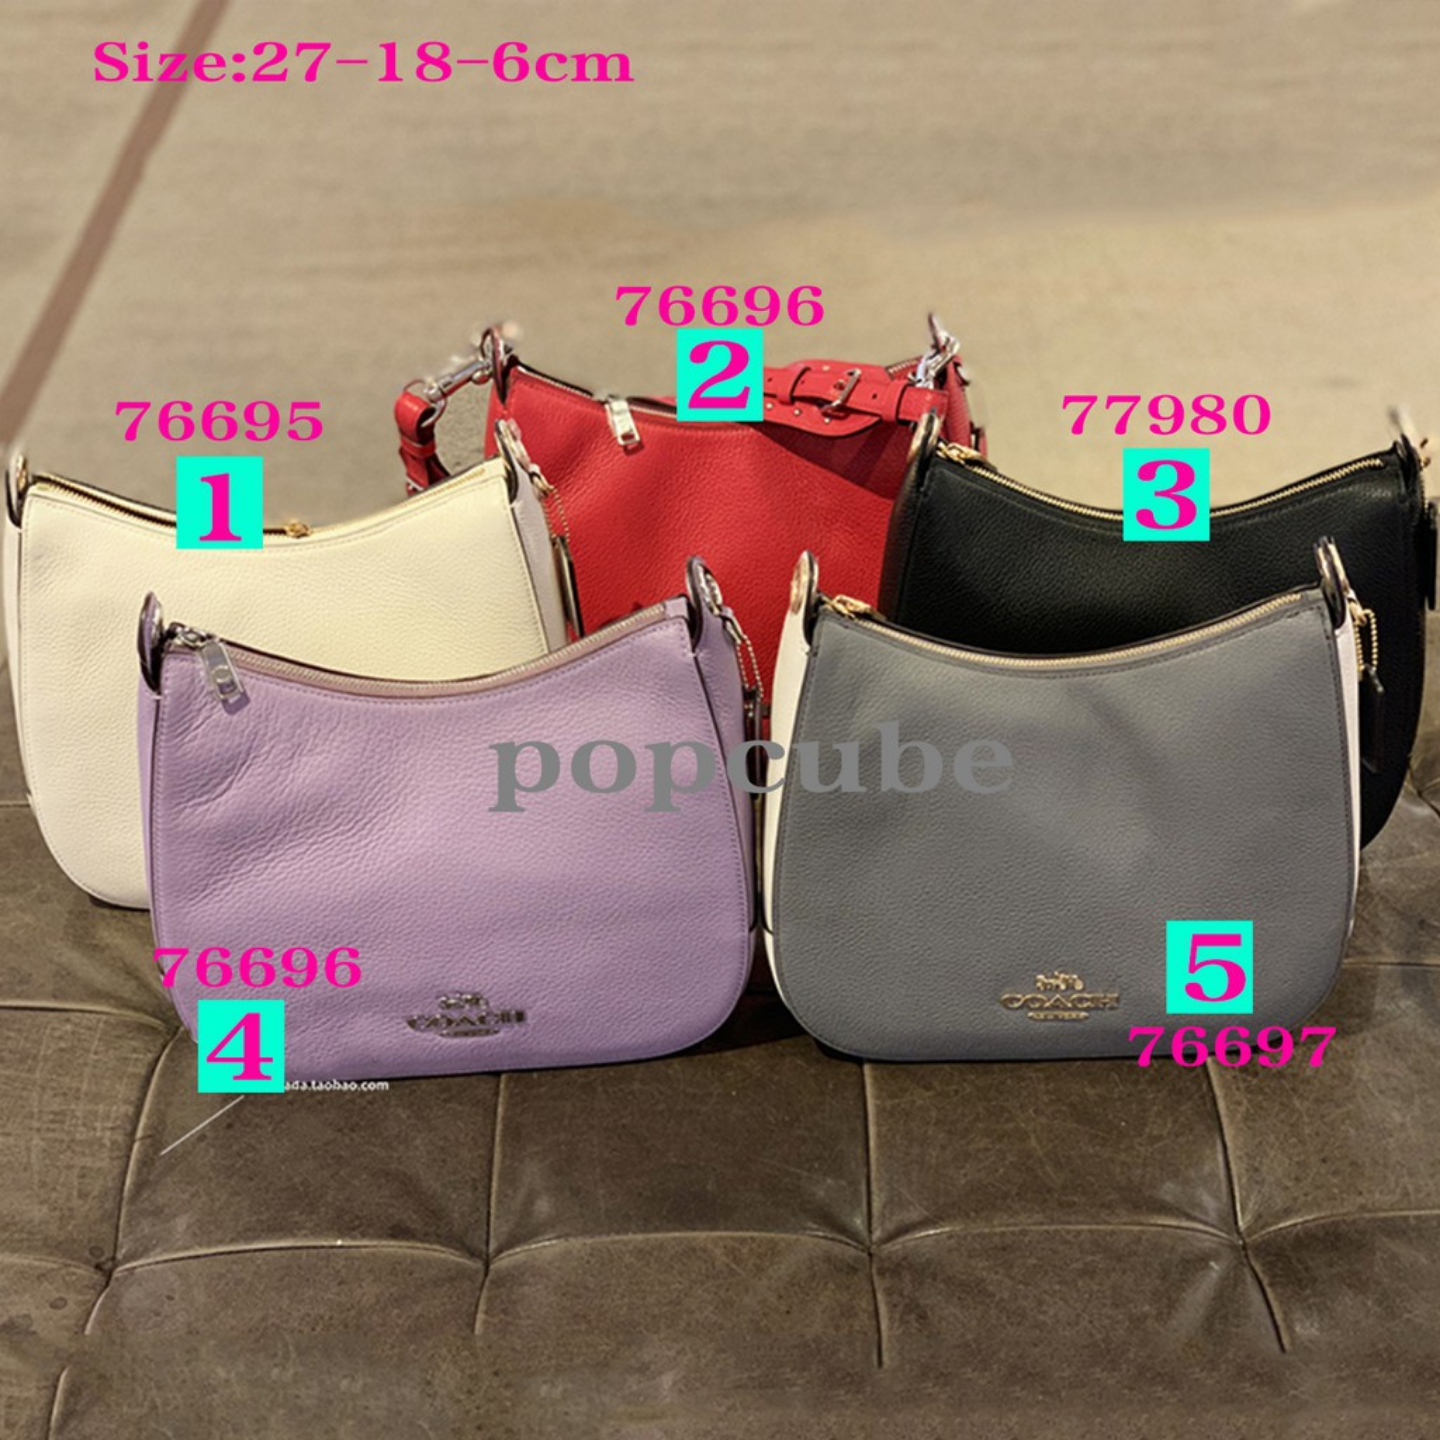 New Design 76695 77980 76696 76697 womens shoulder bag crossbody bag